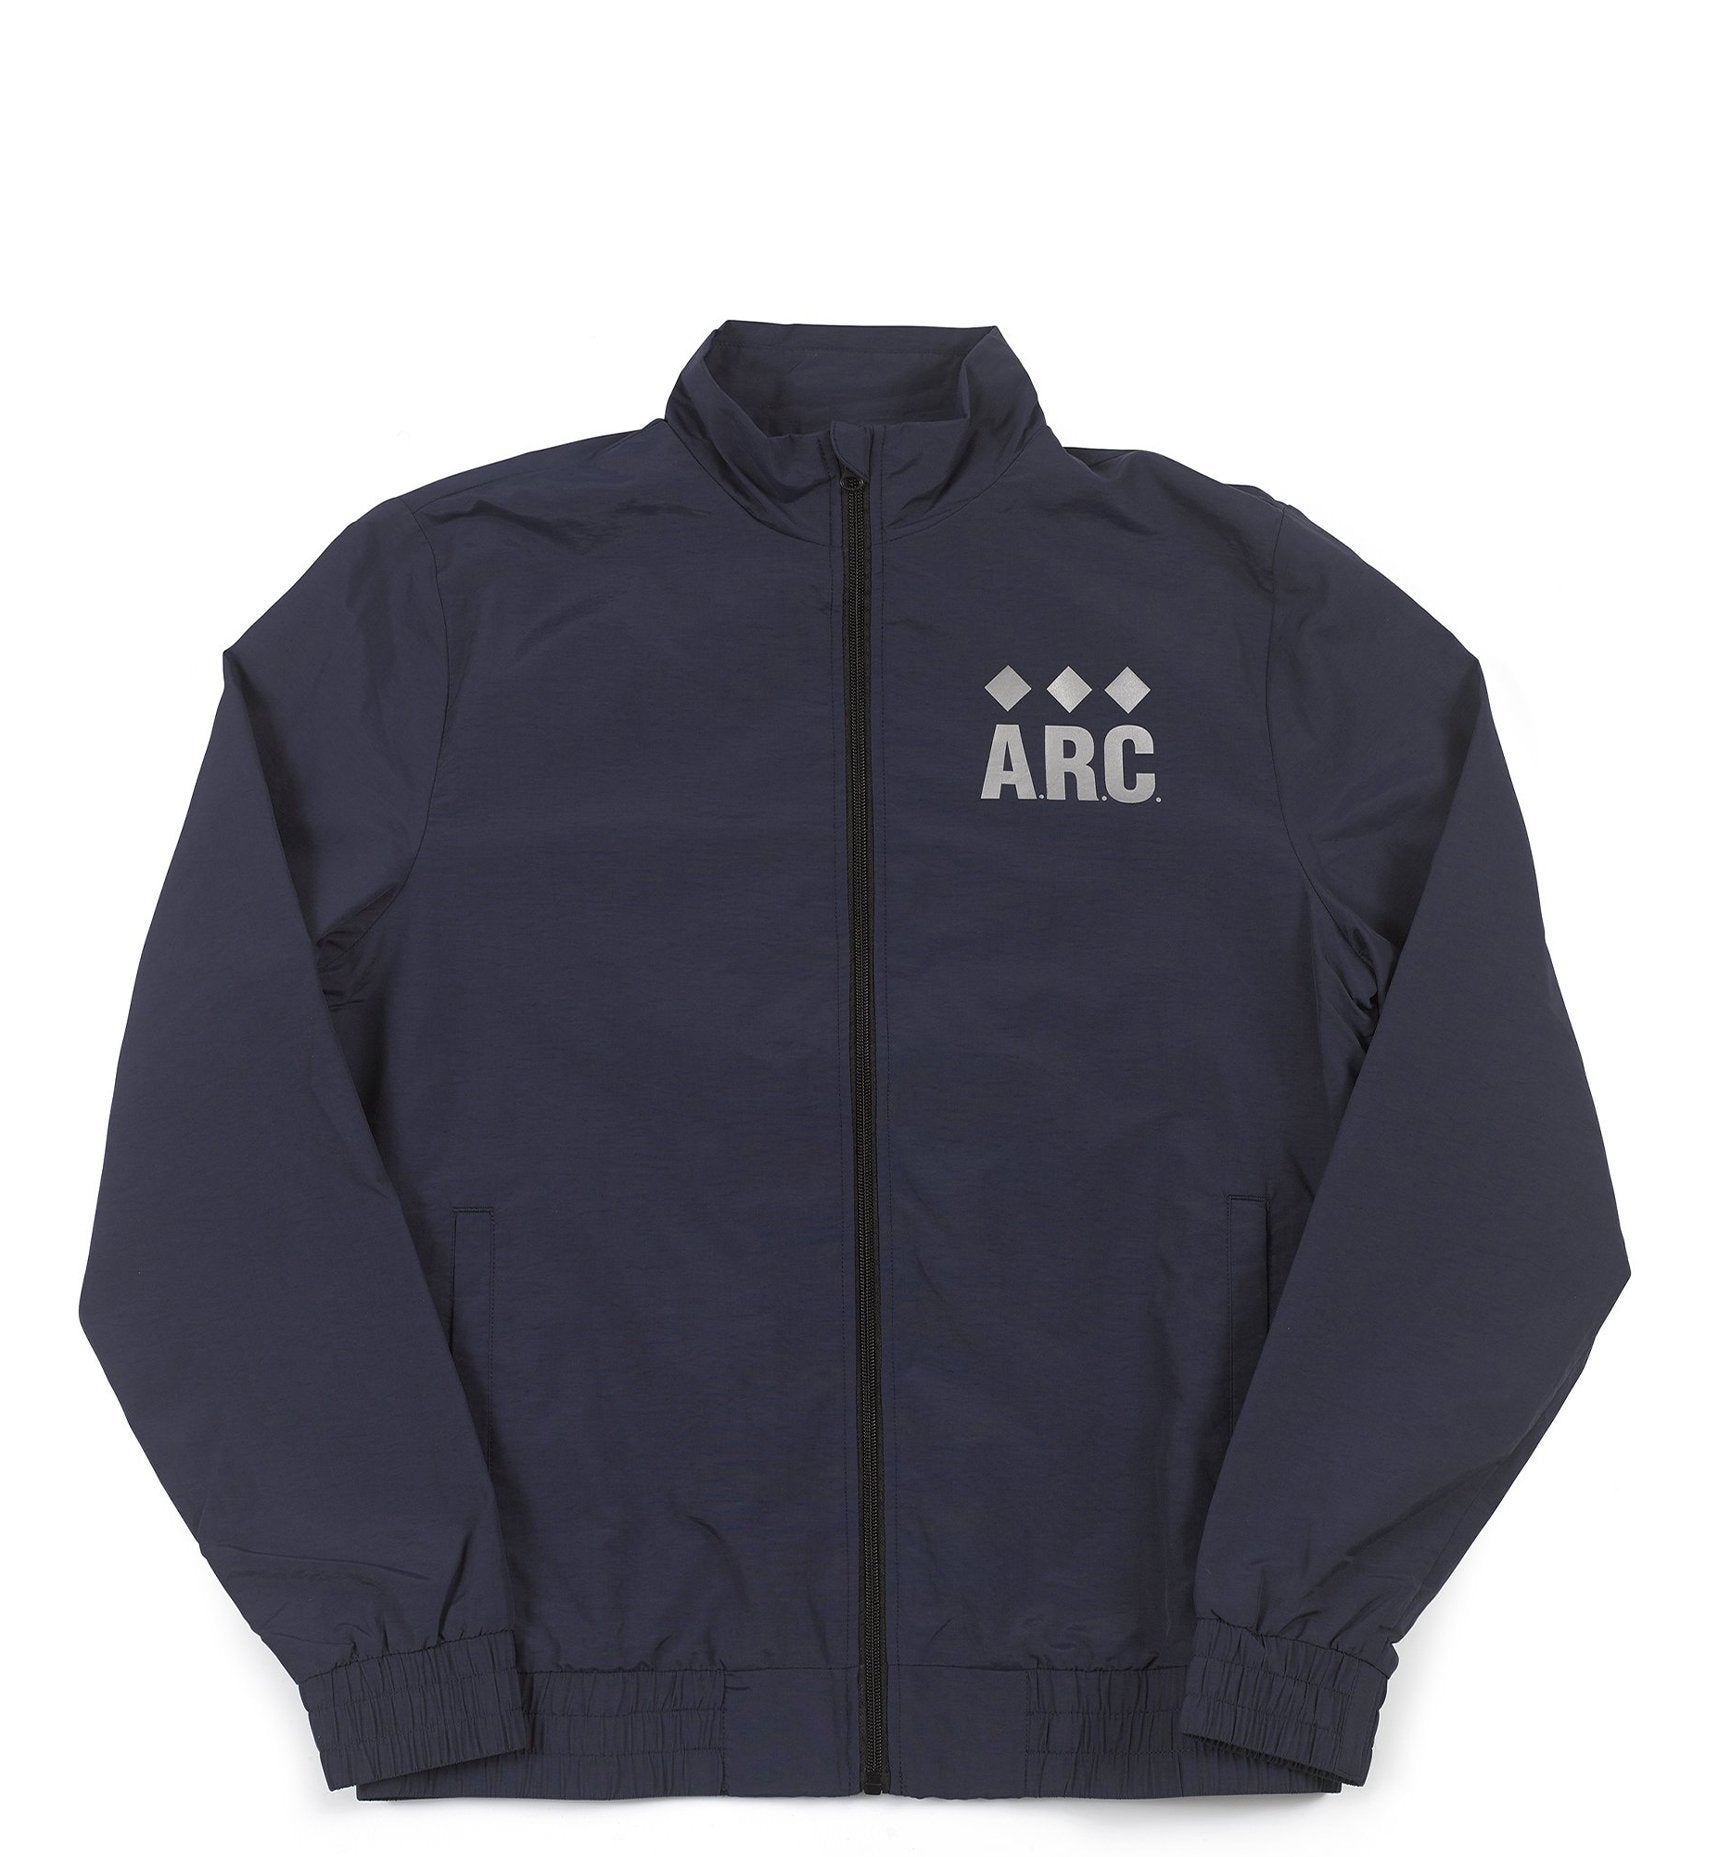 A.R.C. Nylon Track Jacket - Navy